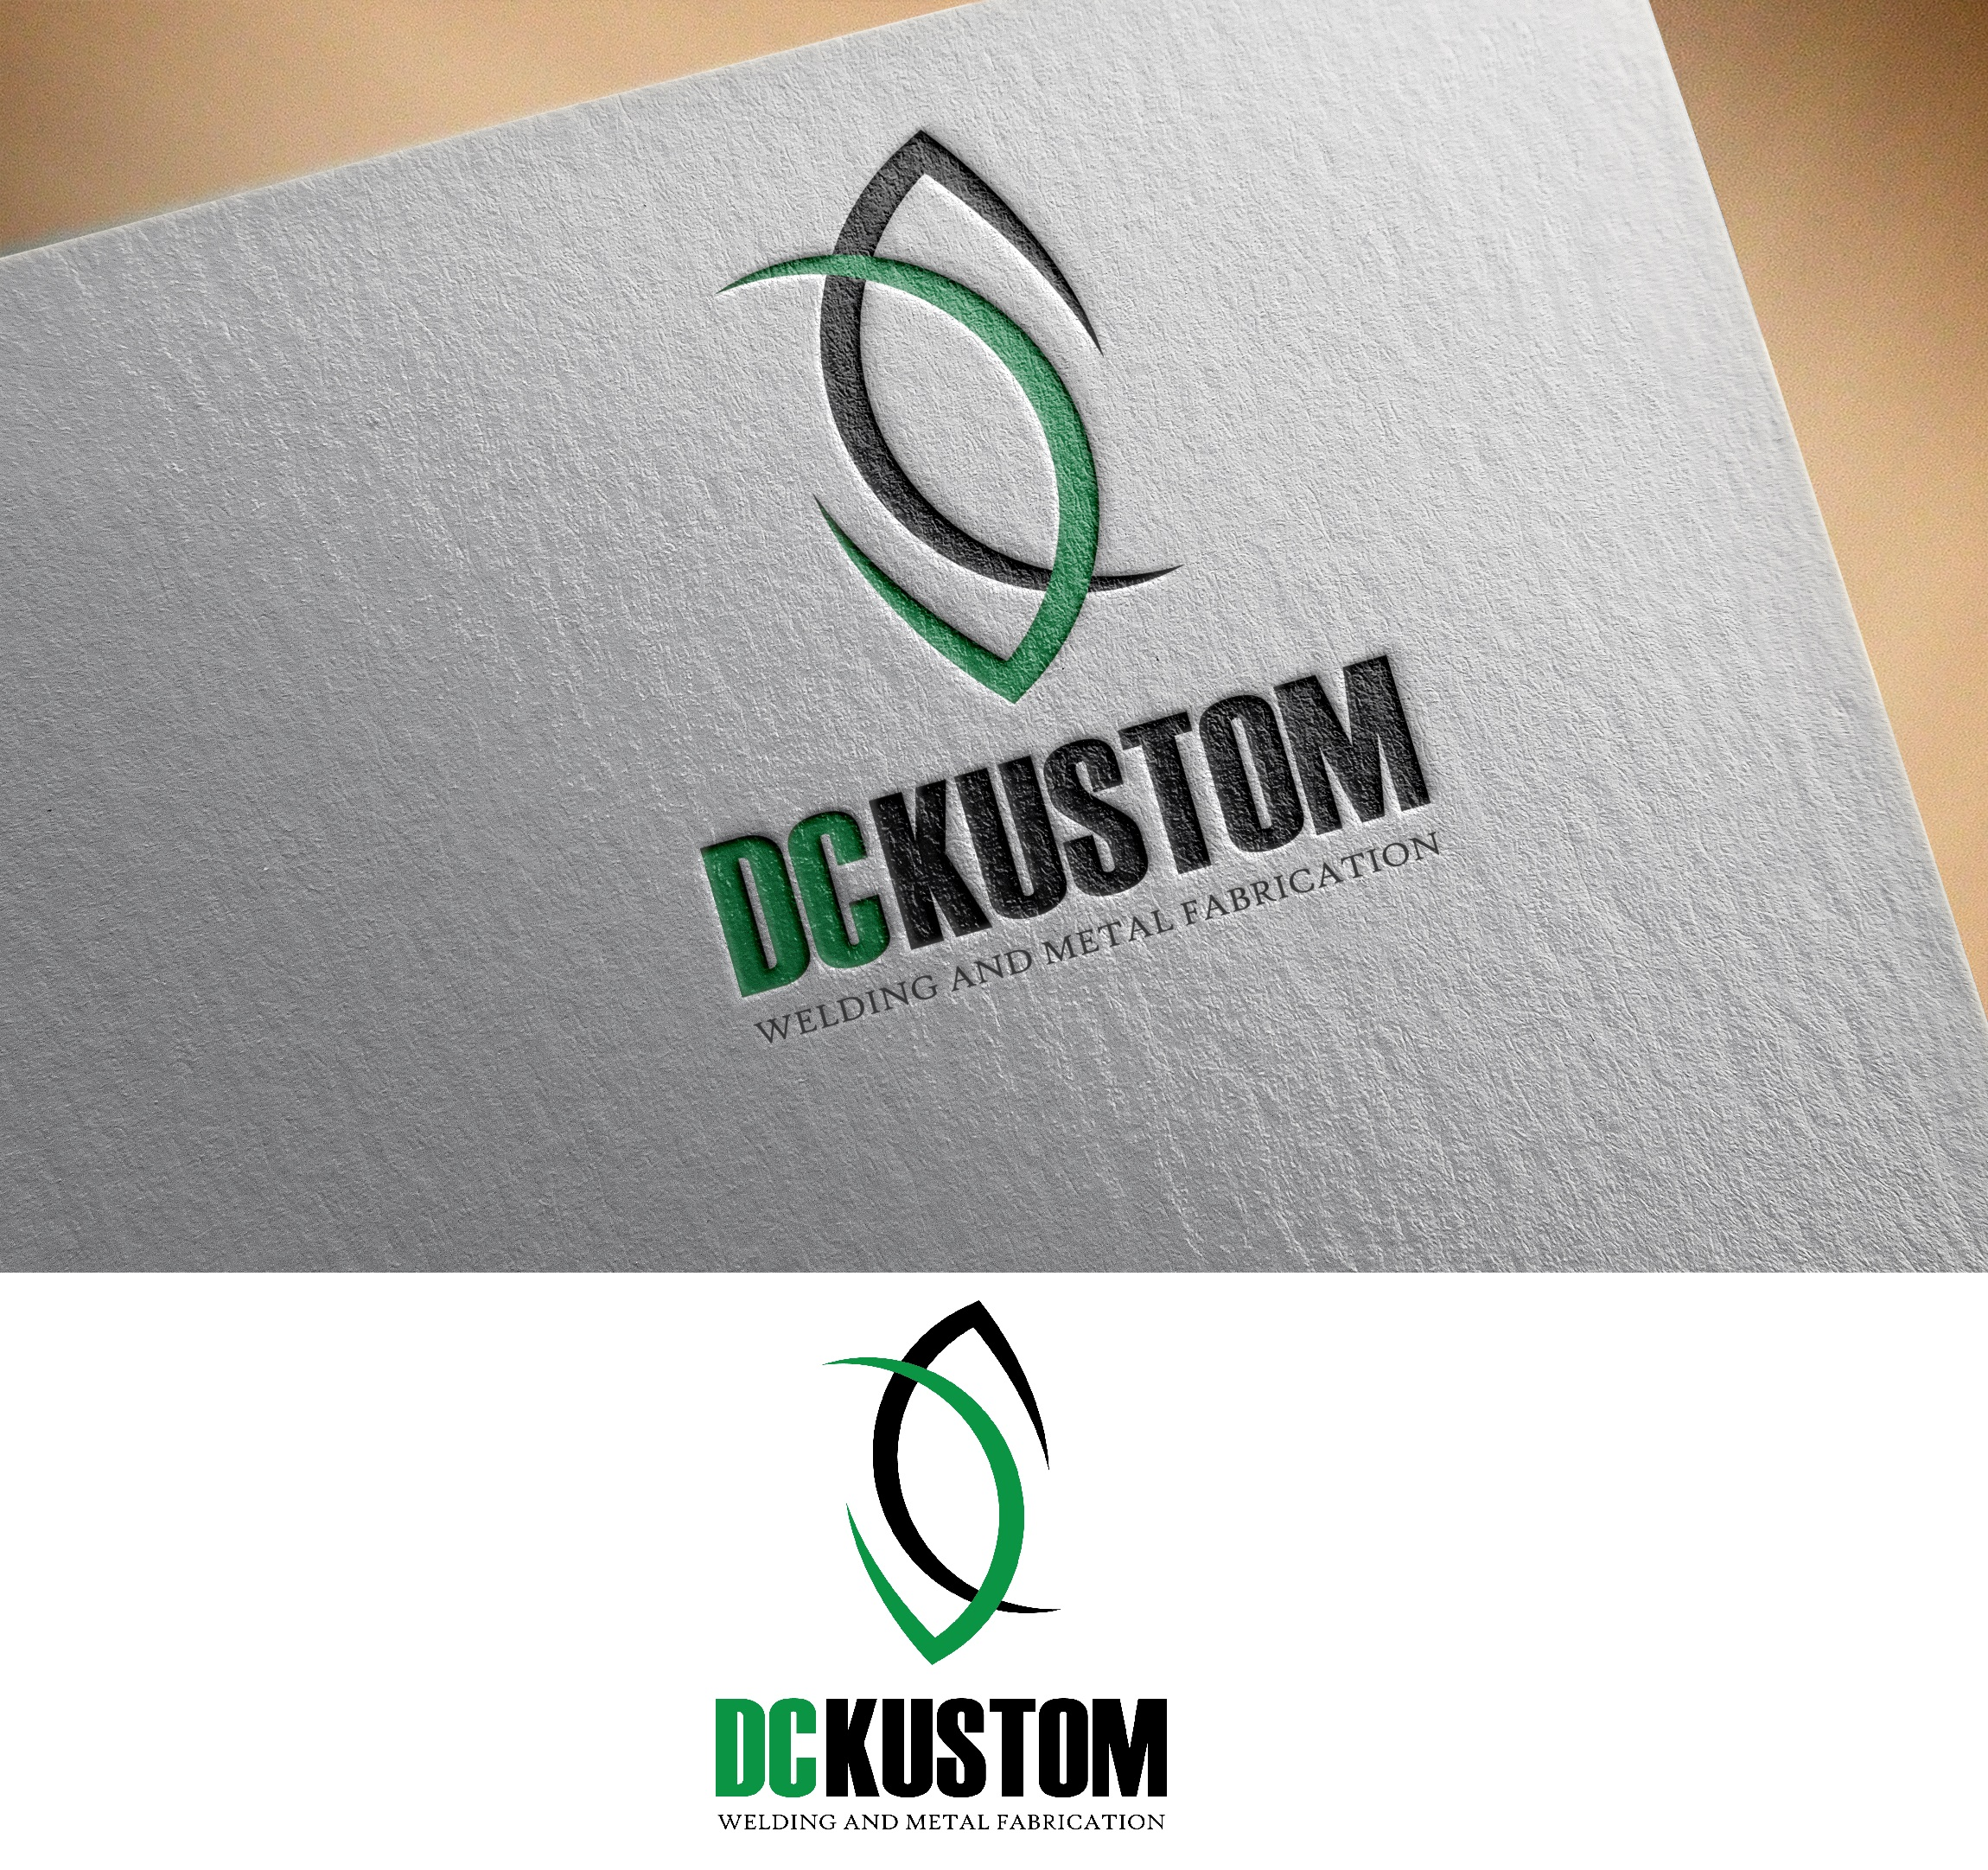 Logo Design by Ivan Aguilon - Entry No. 151 in the Logo Design Contest Imaginative Logo Design for DC KUSTOM WELDING & METAL FABRICATION.